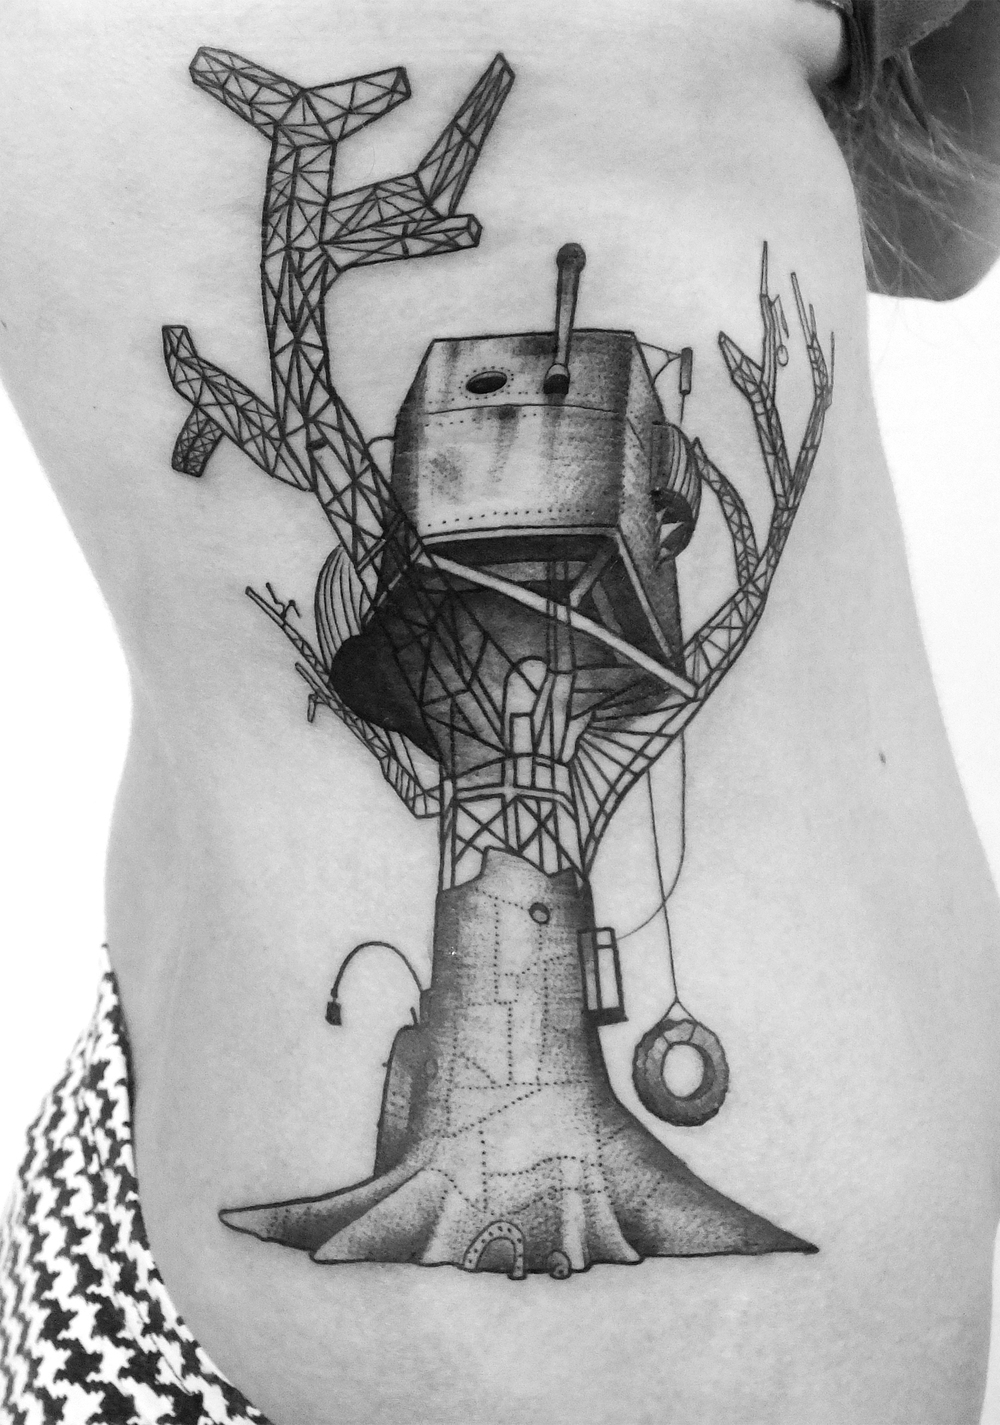 Berlin tattoo artist Prenzlauer Berg steampunk Blut und Eisen black dark dotwork graphic ink Ivan Antikapratika